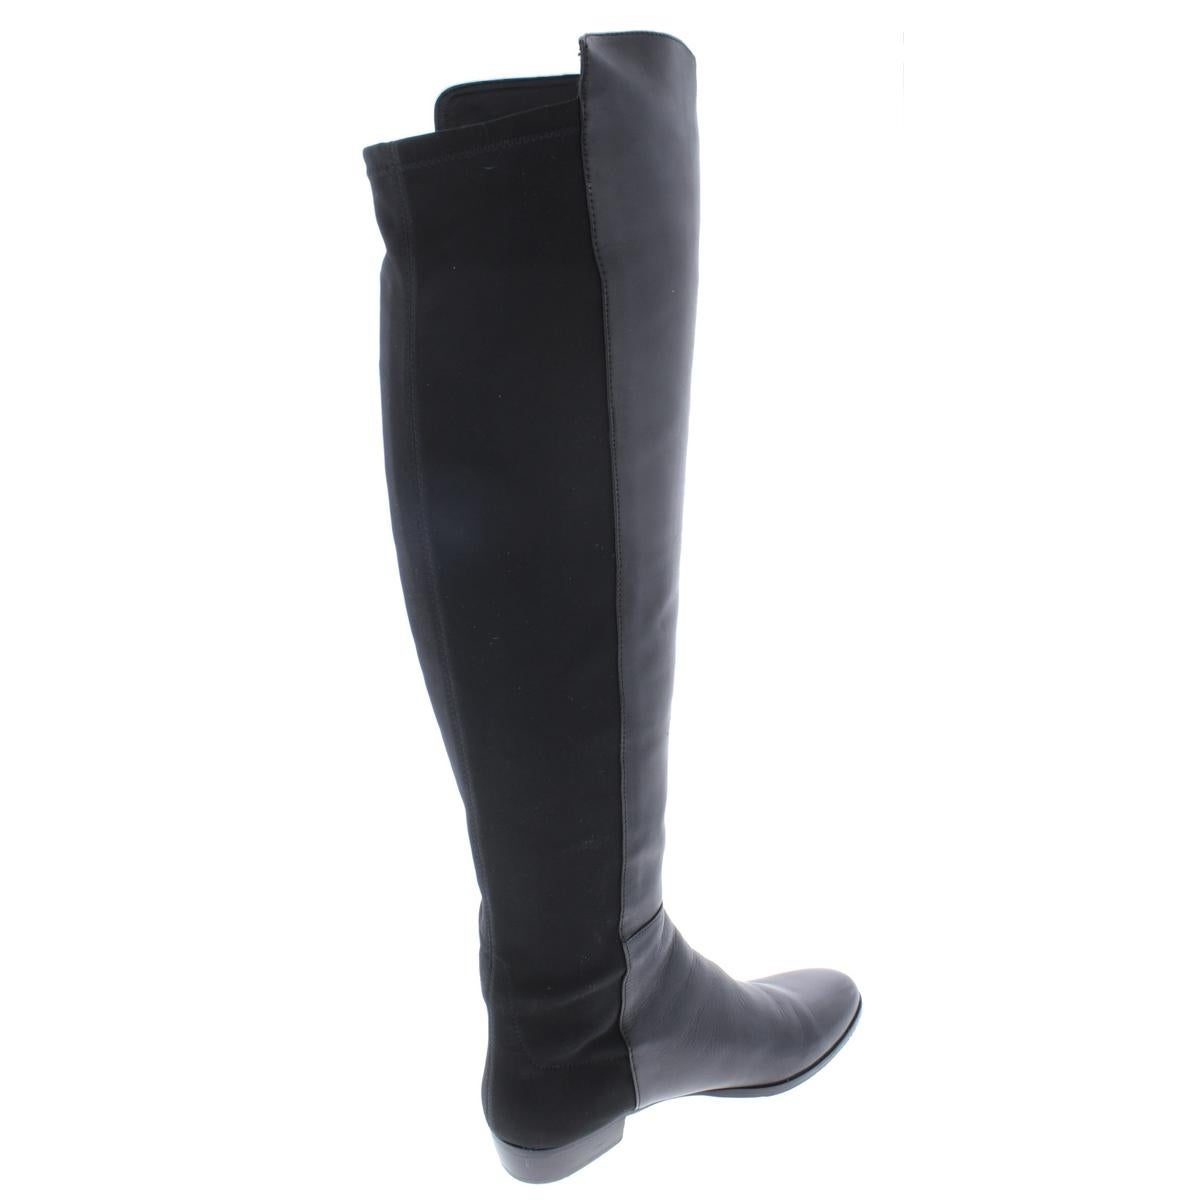 8eef579b484 Vince Camuto Womens Karita Over-The-Knee Boots Leather Stretch